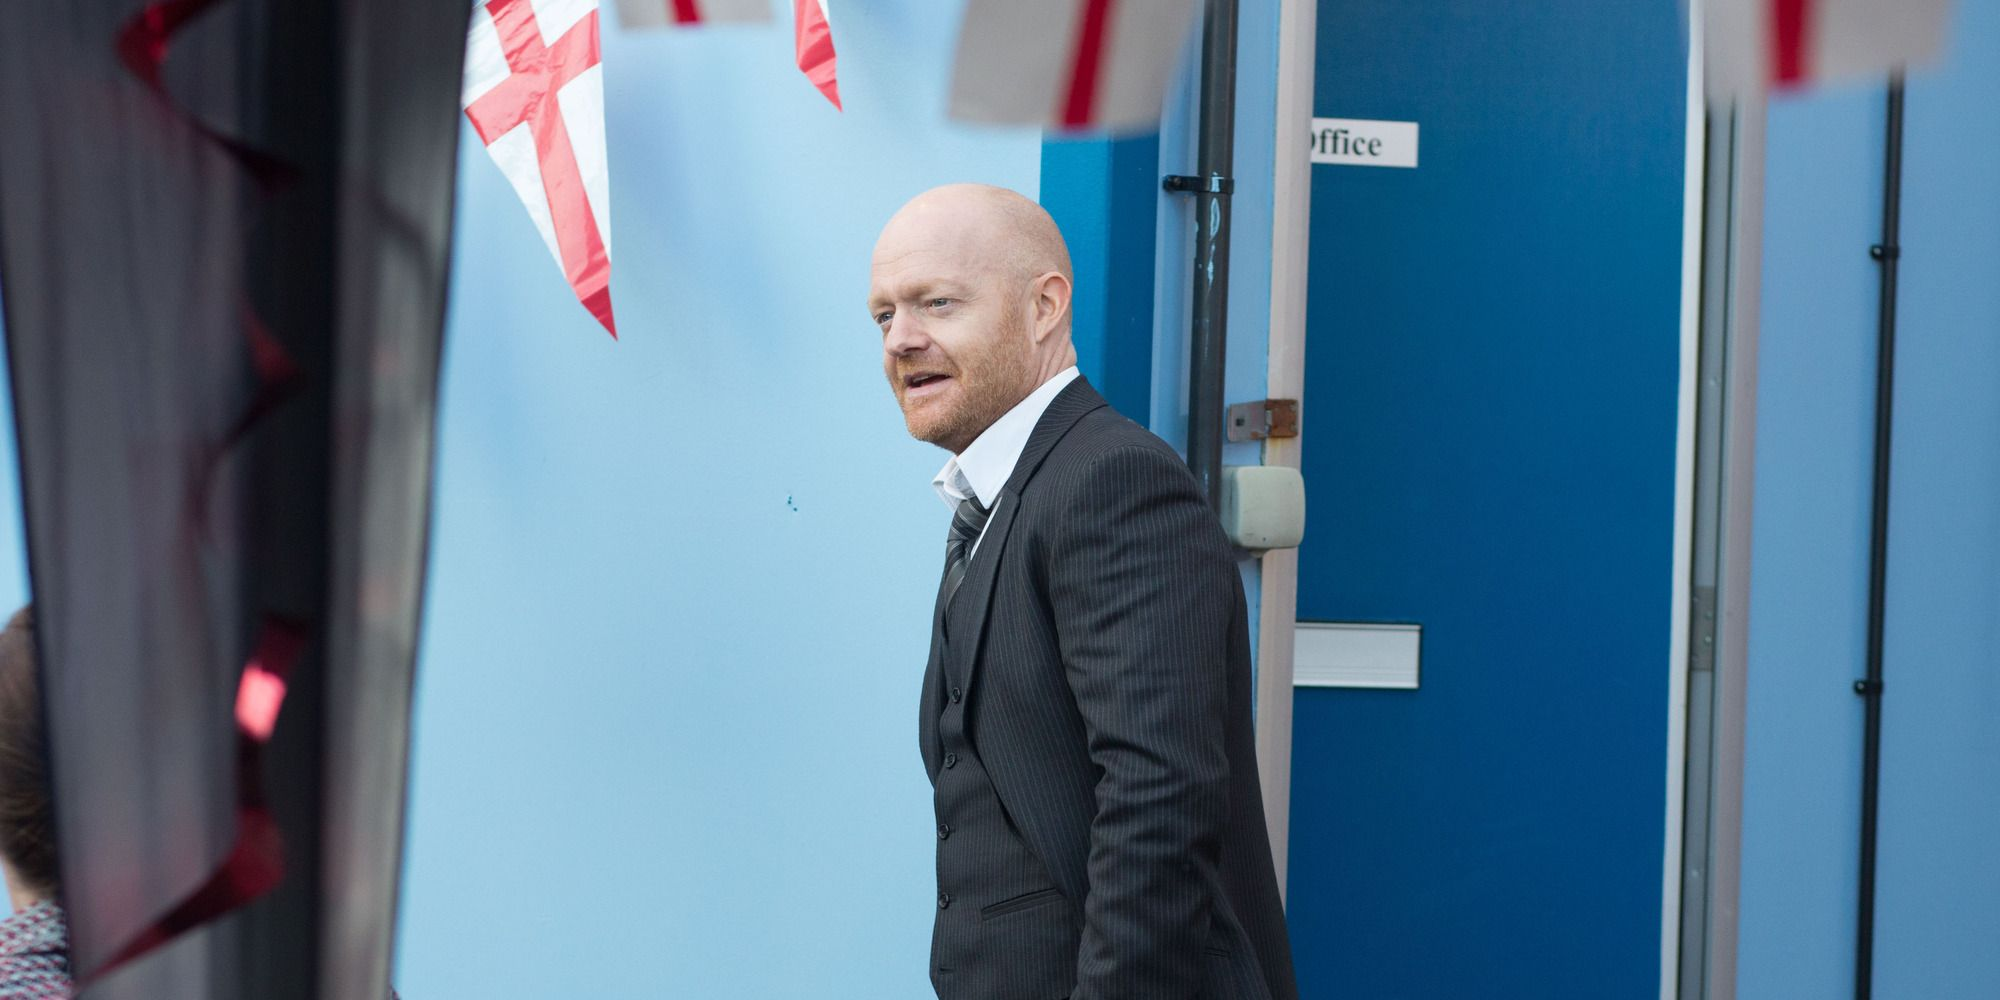 Max Branning is back in EastEnders